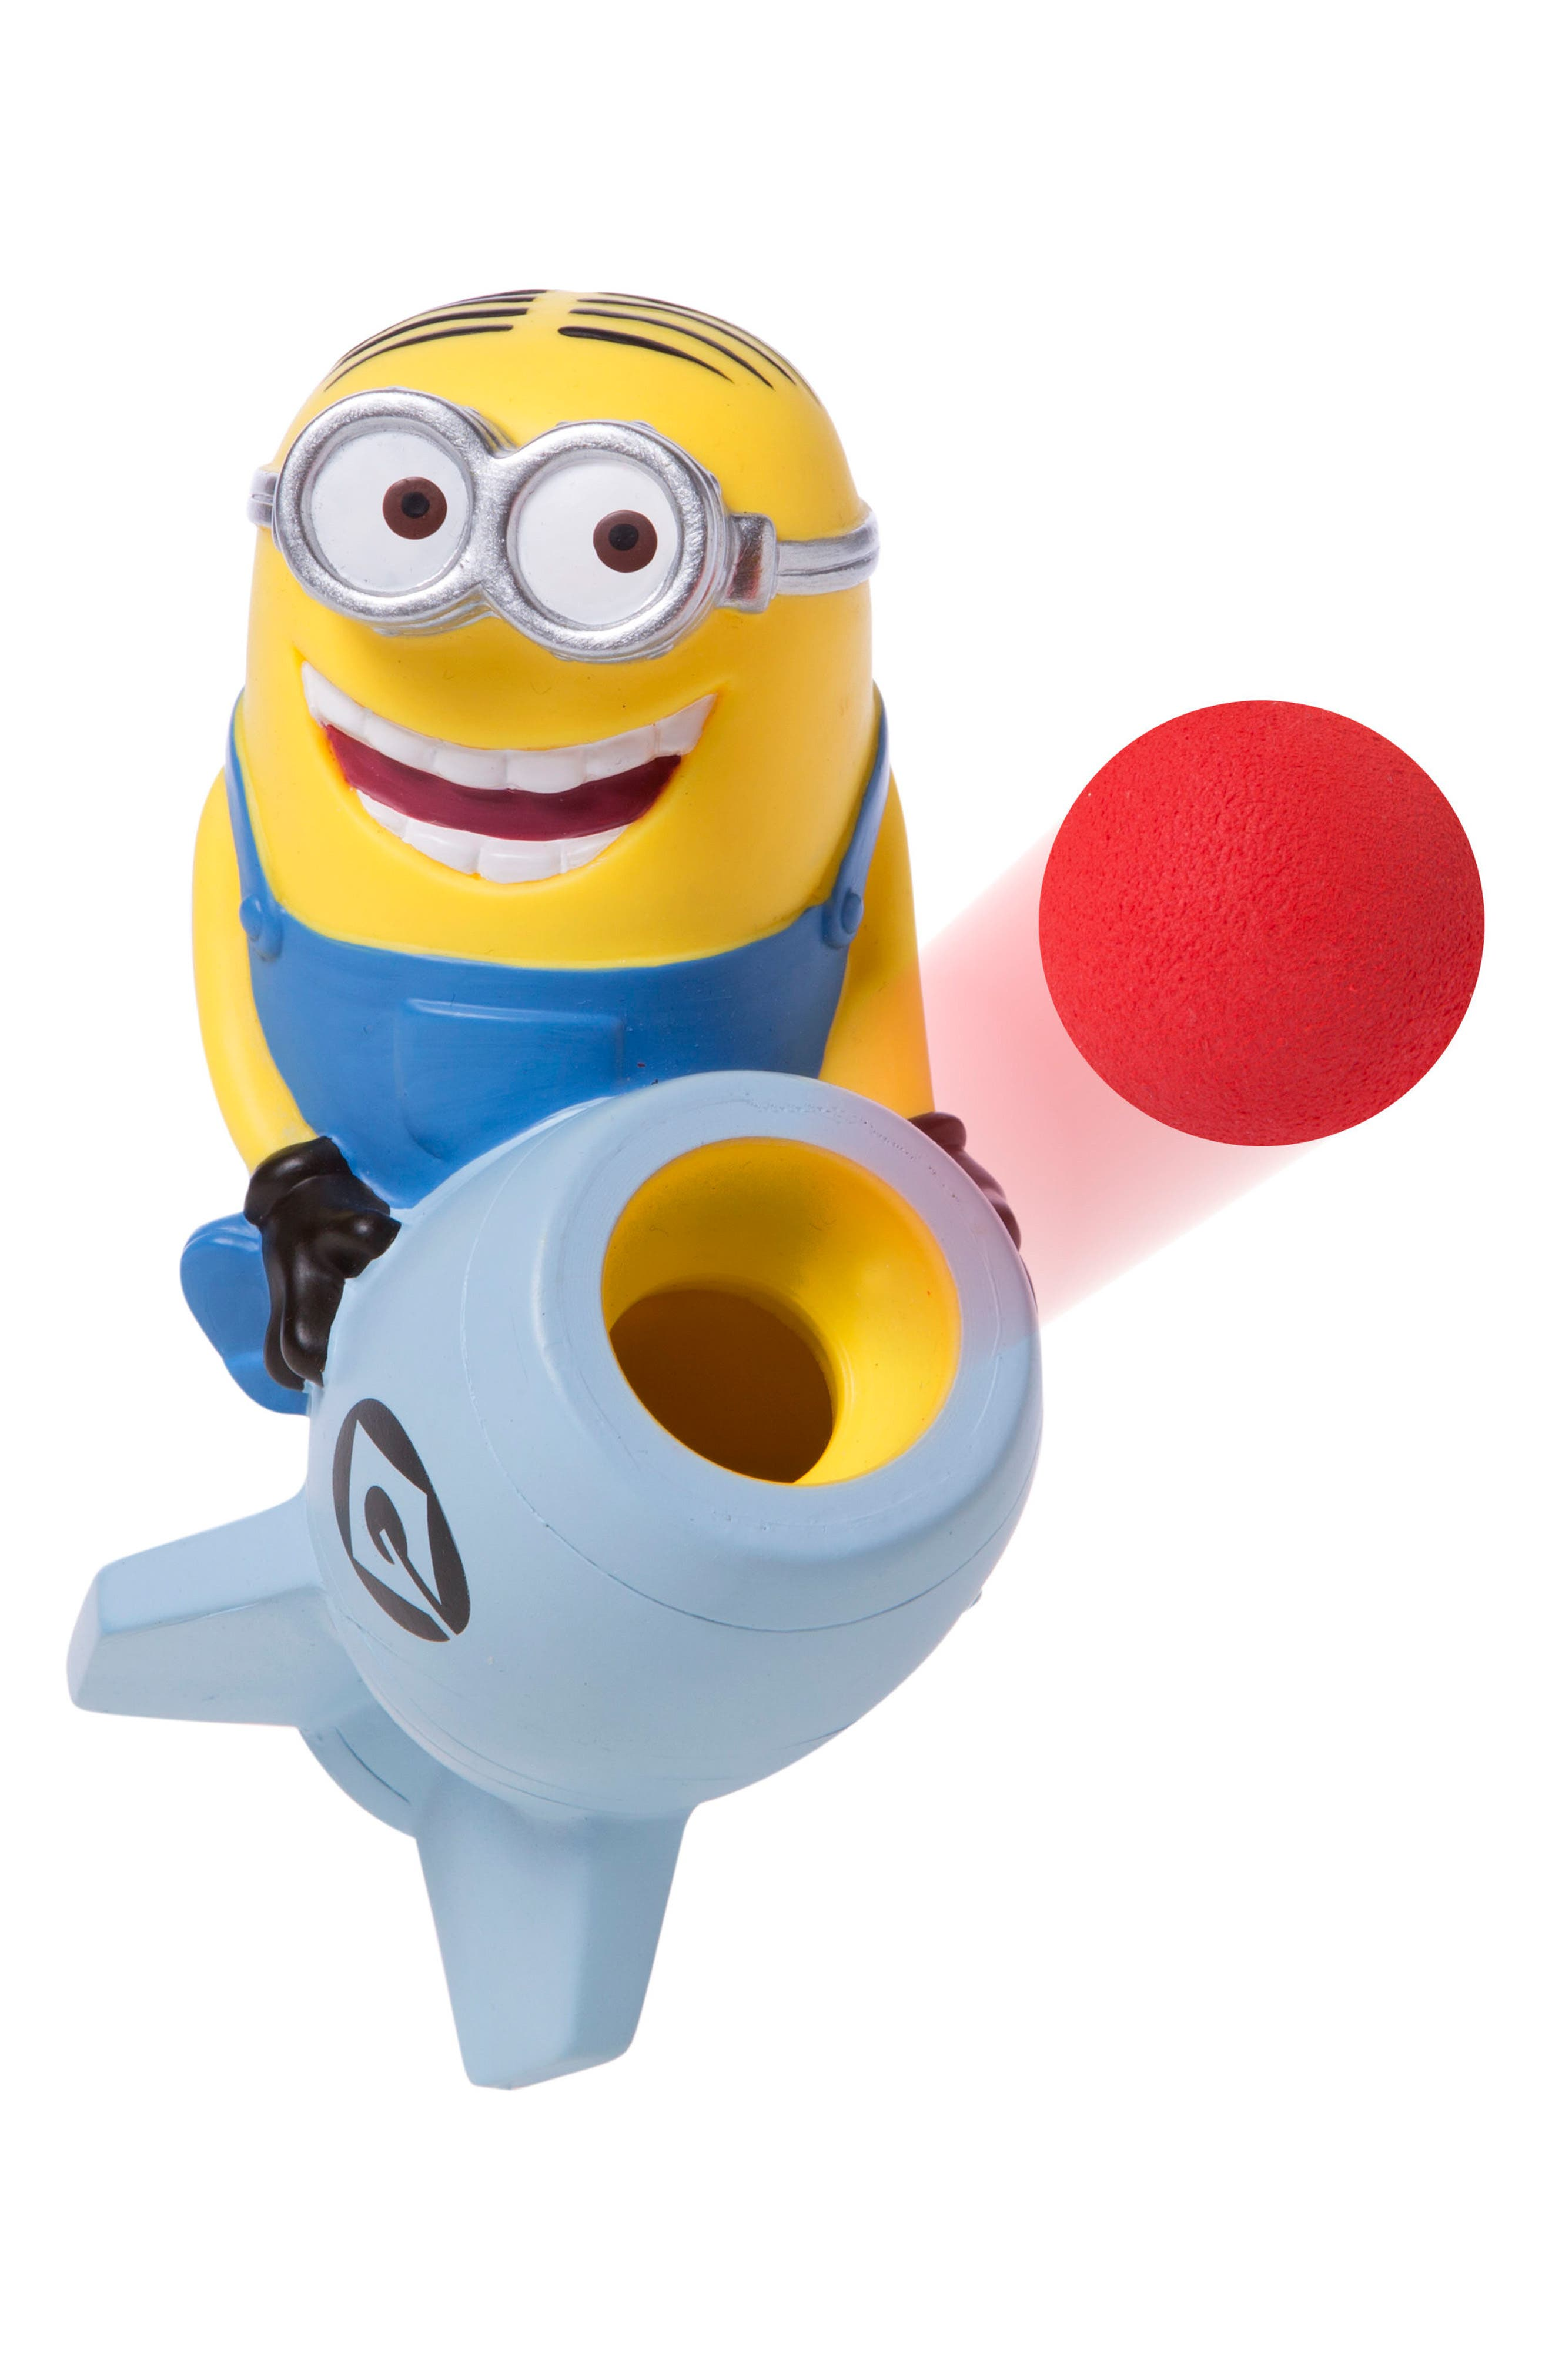 Alternate Image 1 Selected - Hog Wild Toys Dave Minion Popper Toy